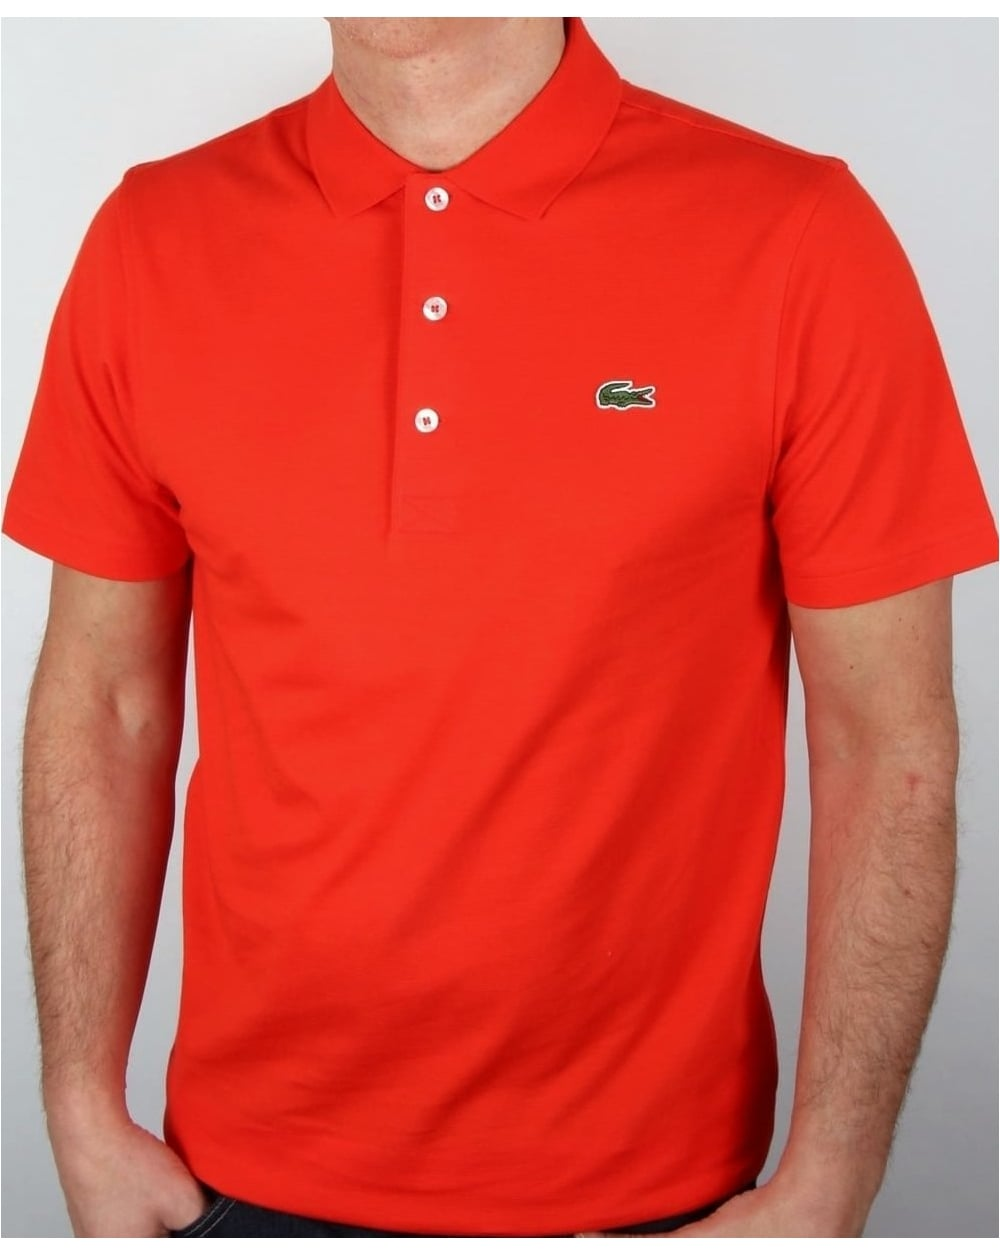 7c481331 Lacoste Polo Shirt Etna Red